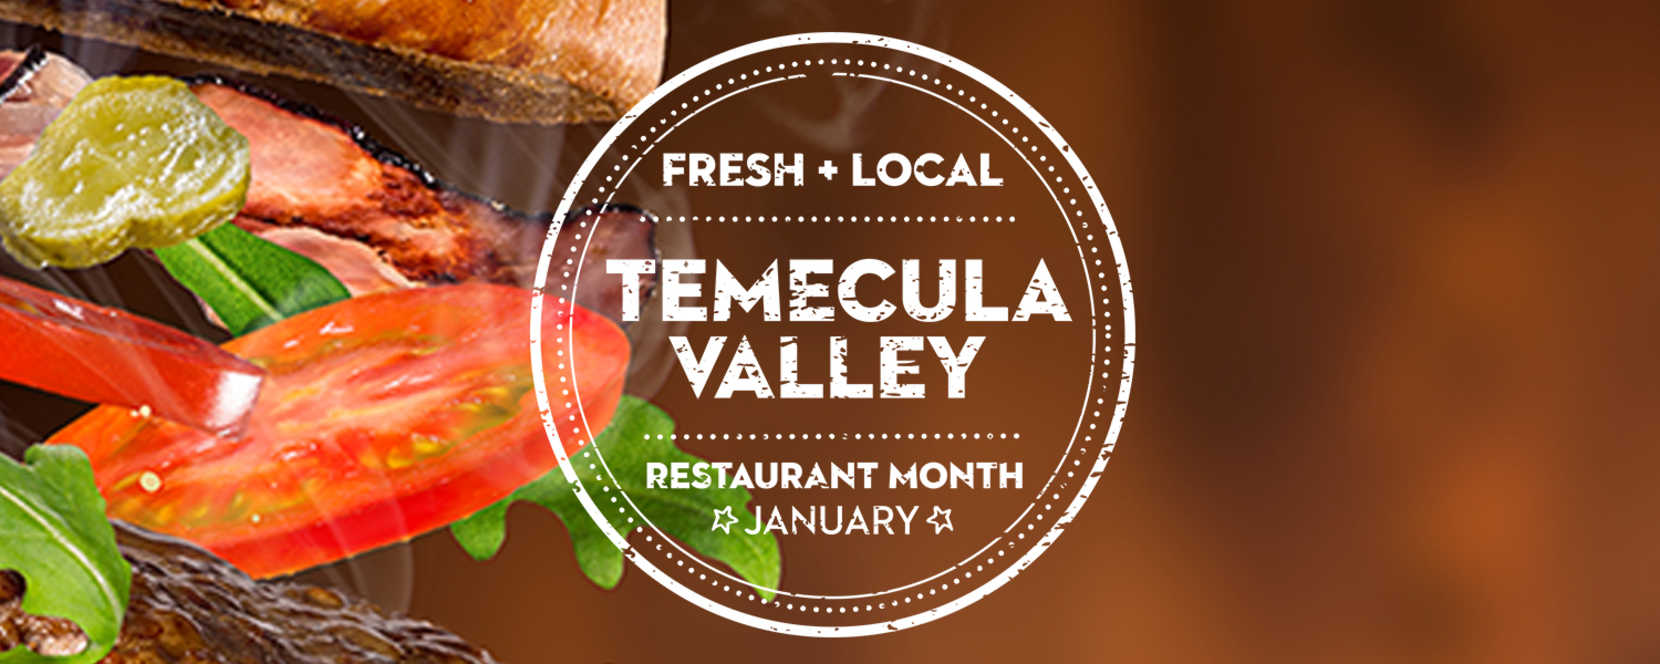 Fresh + Local | Temecula Valley restaurant of the month for January